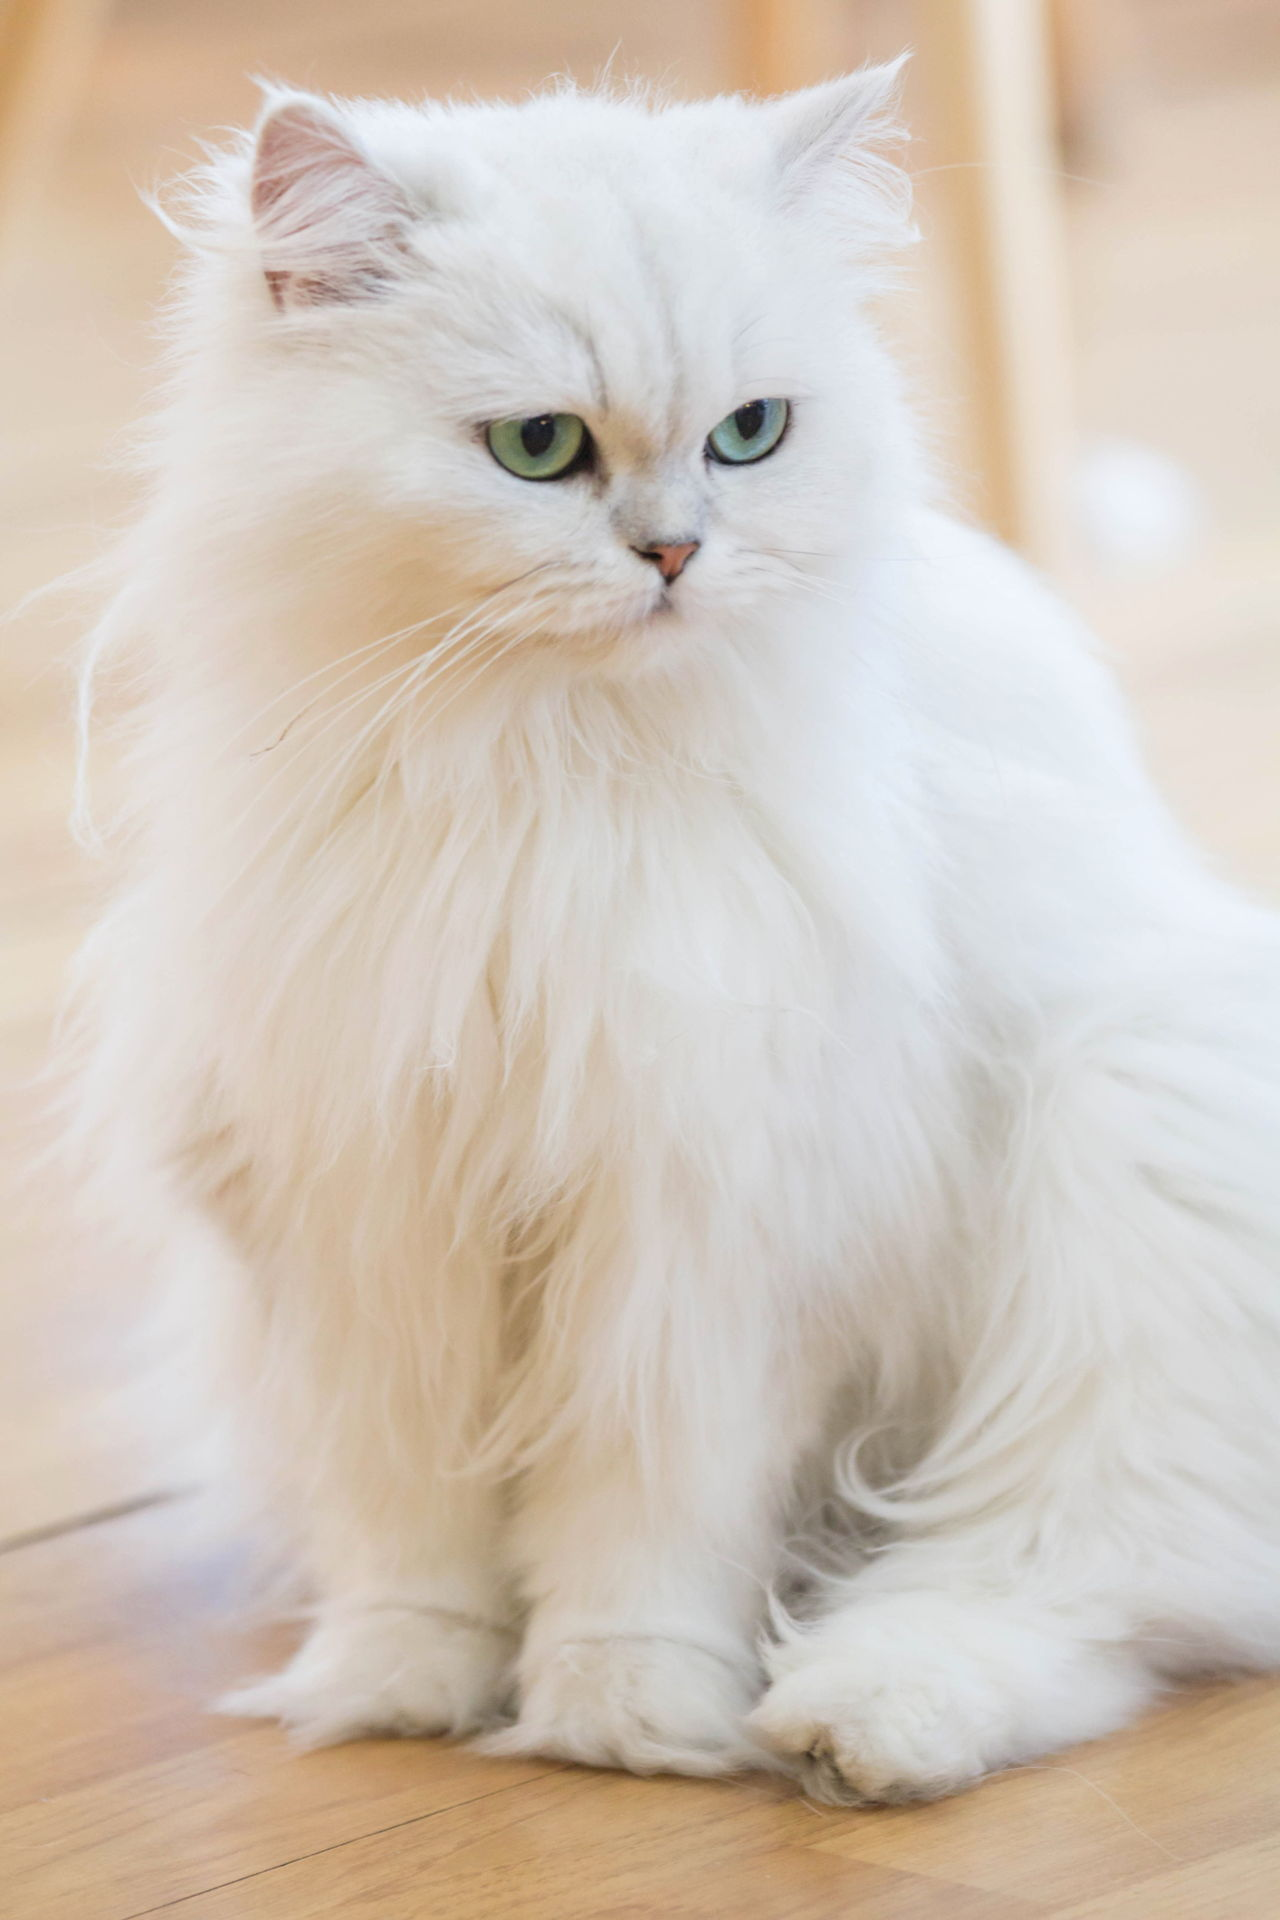 These Facts About White Cat Breeds are Quite Fur-tastic